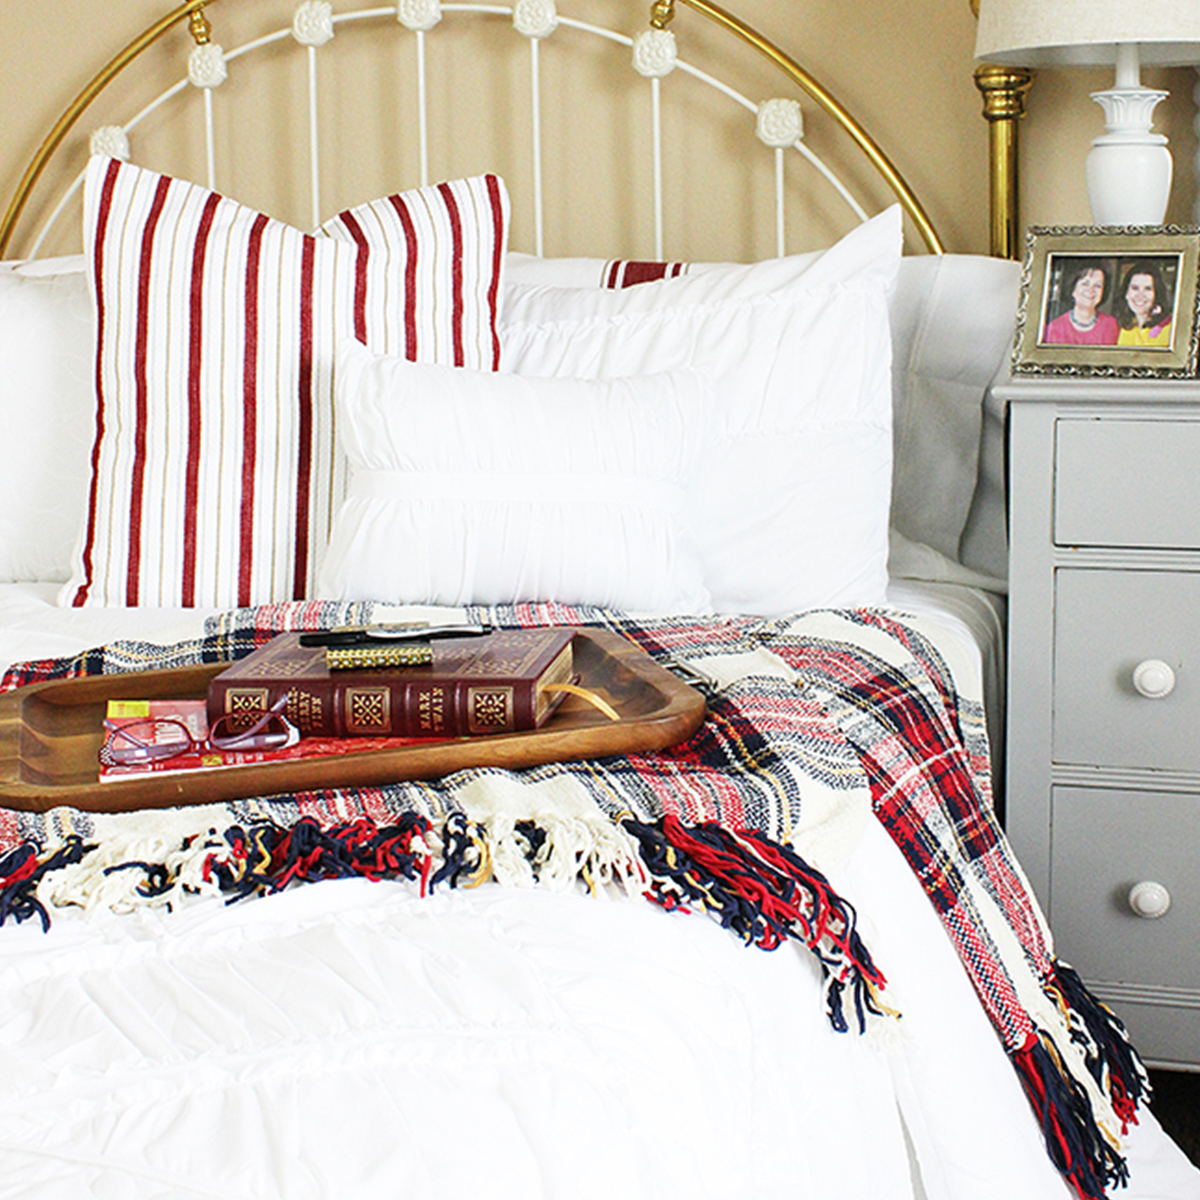 Better Homes & Gardens comforter with red and white plaid blankets and pillows photo